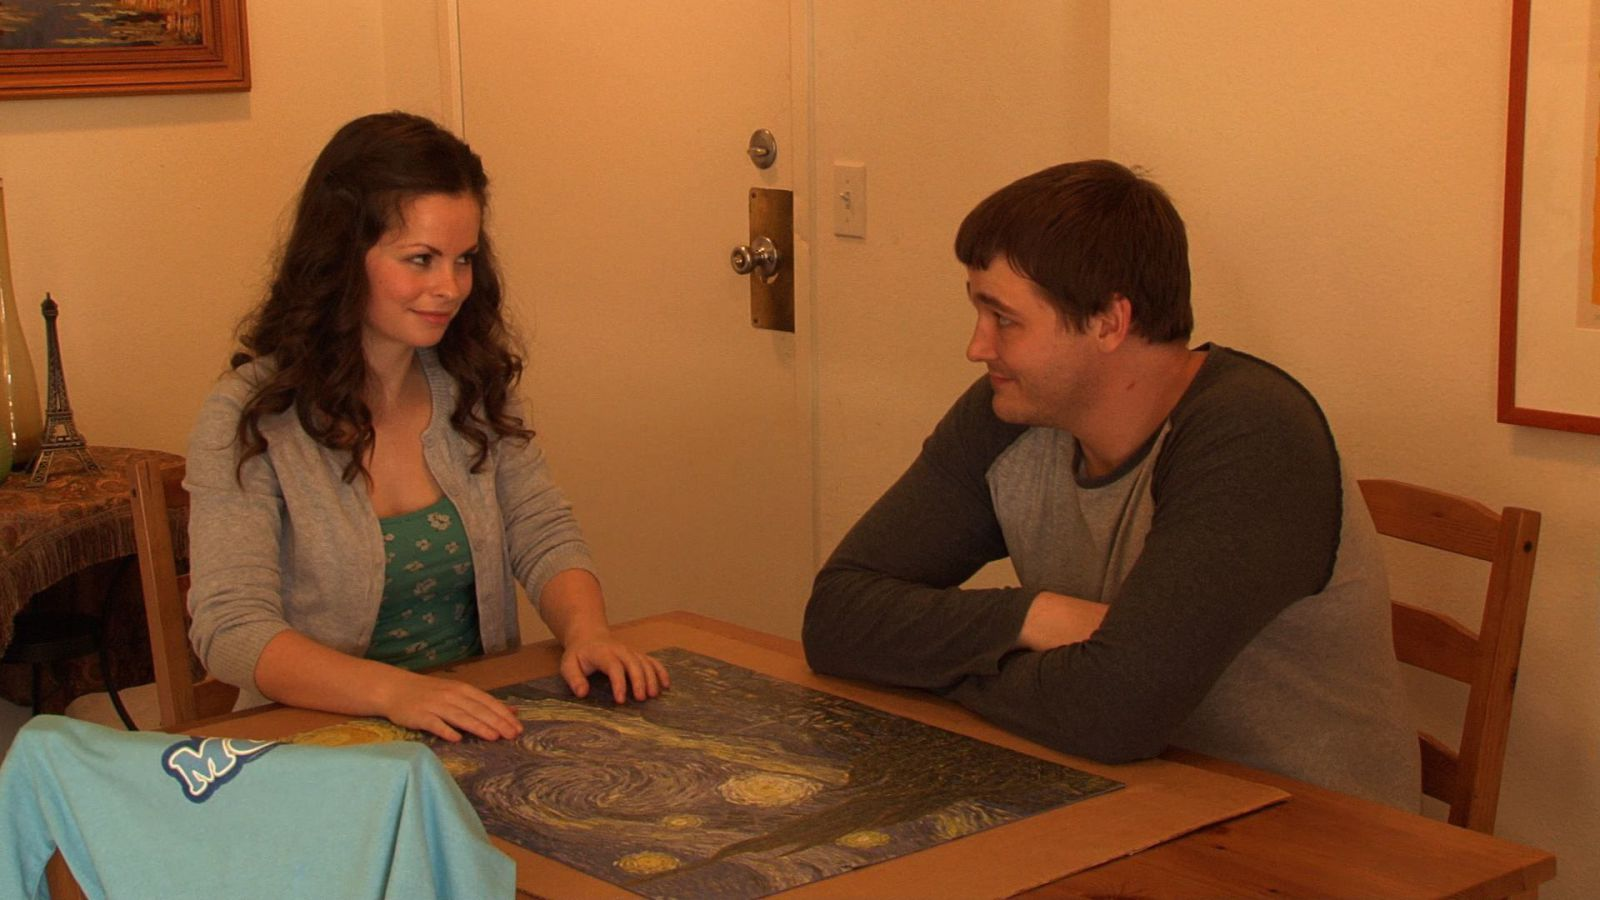 Left to Right: Celeste Chute as Mille and Mathew L. Hart as Bradley in FALLING...